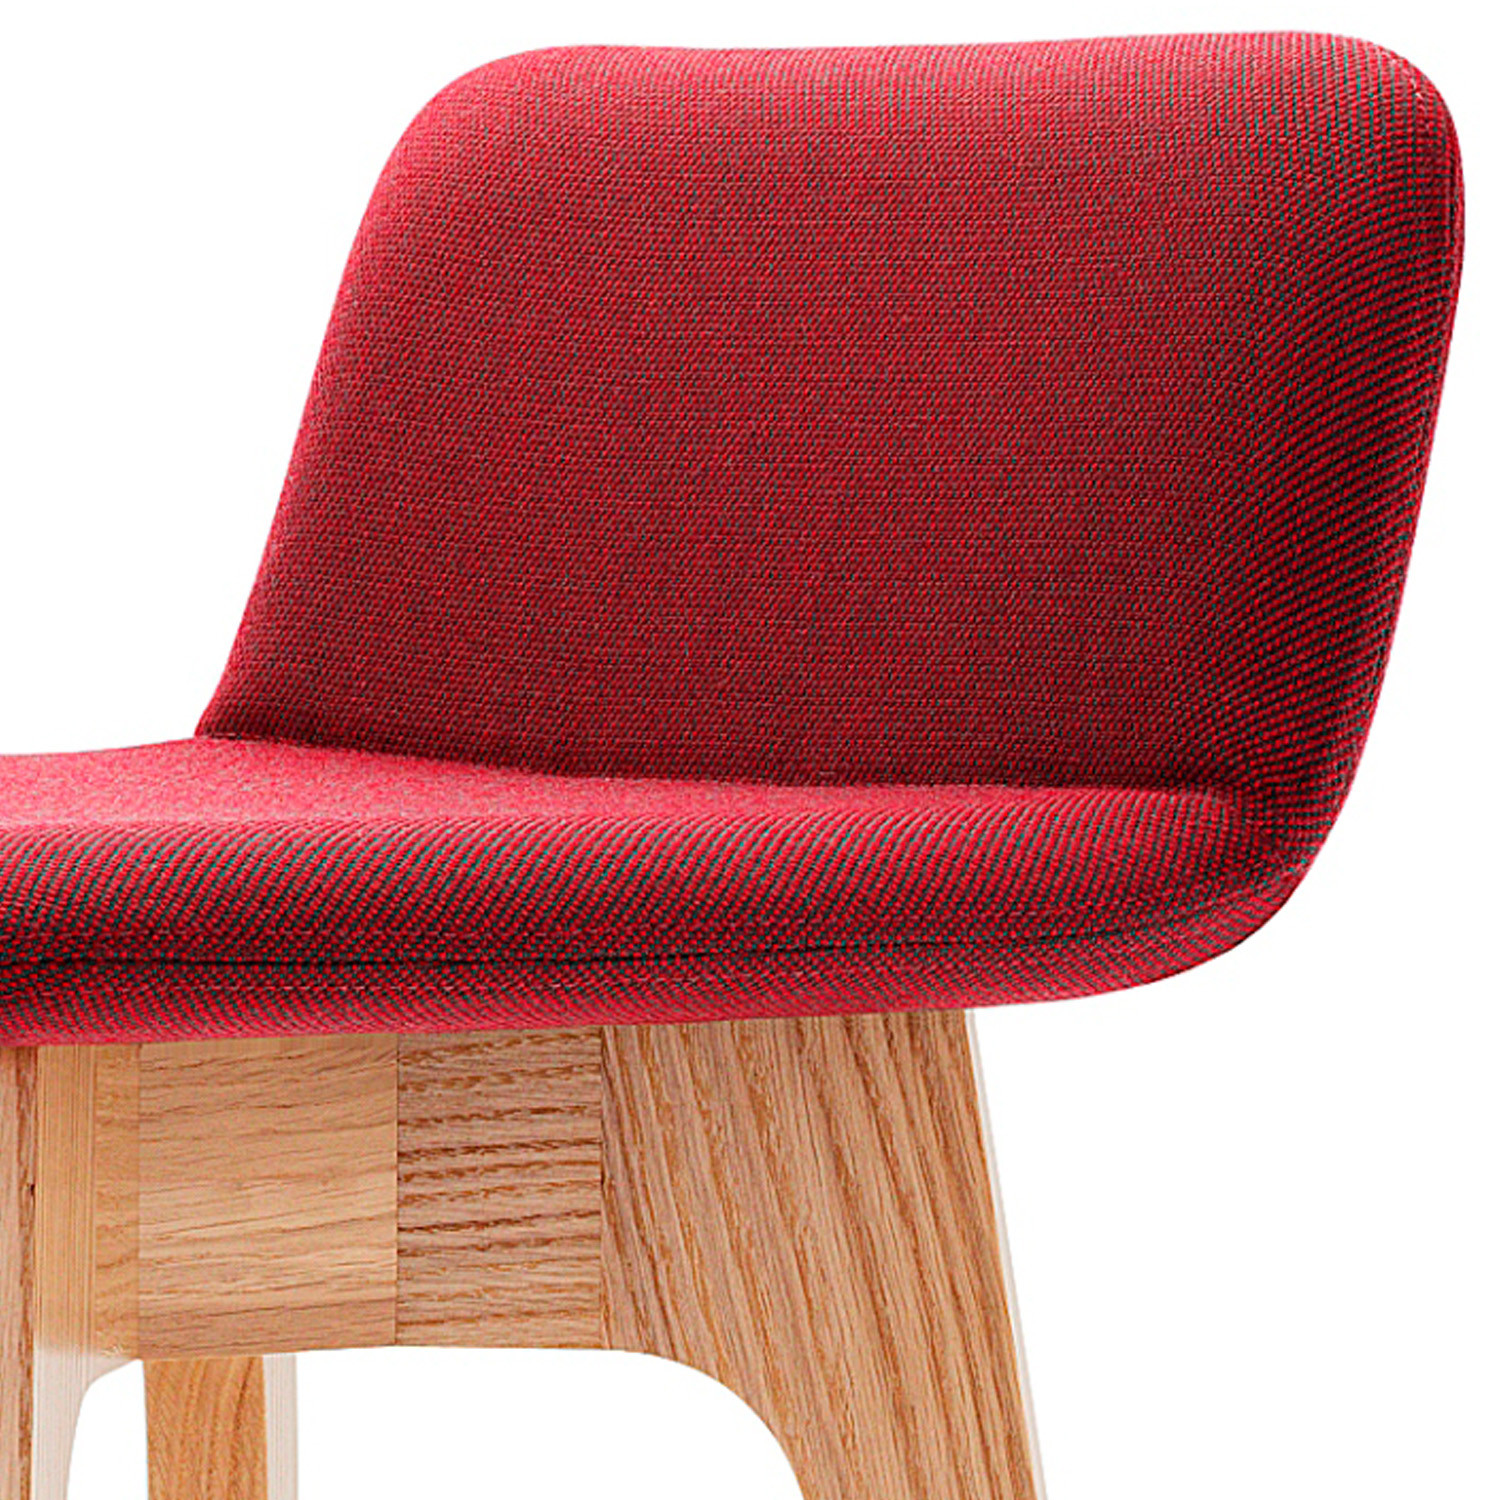 Agent Bar Stool Cushioned Back Rest